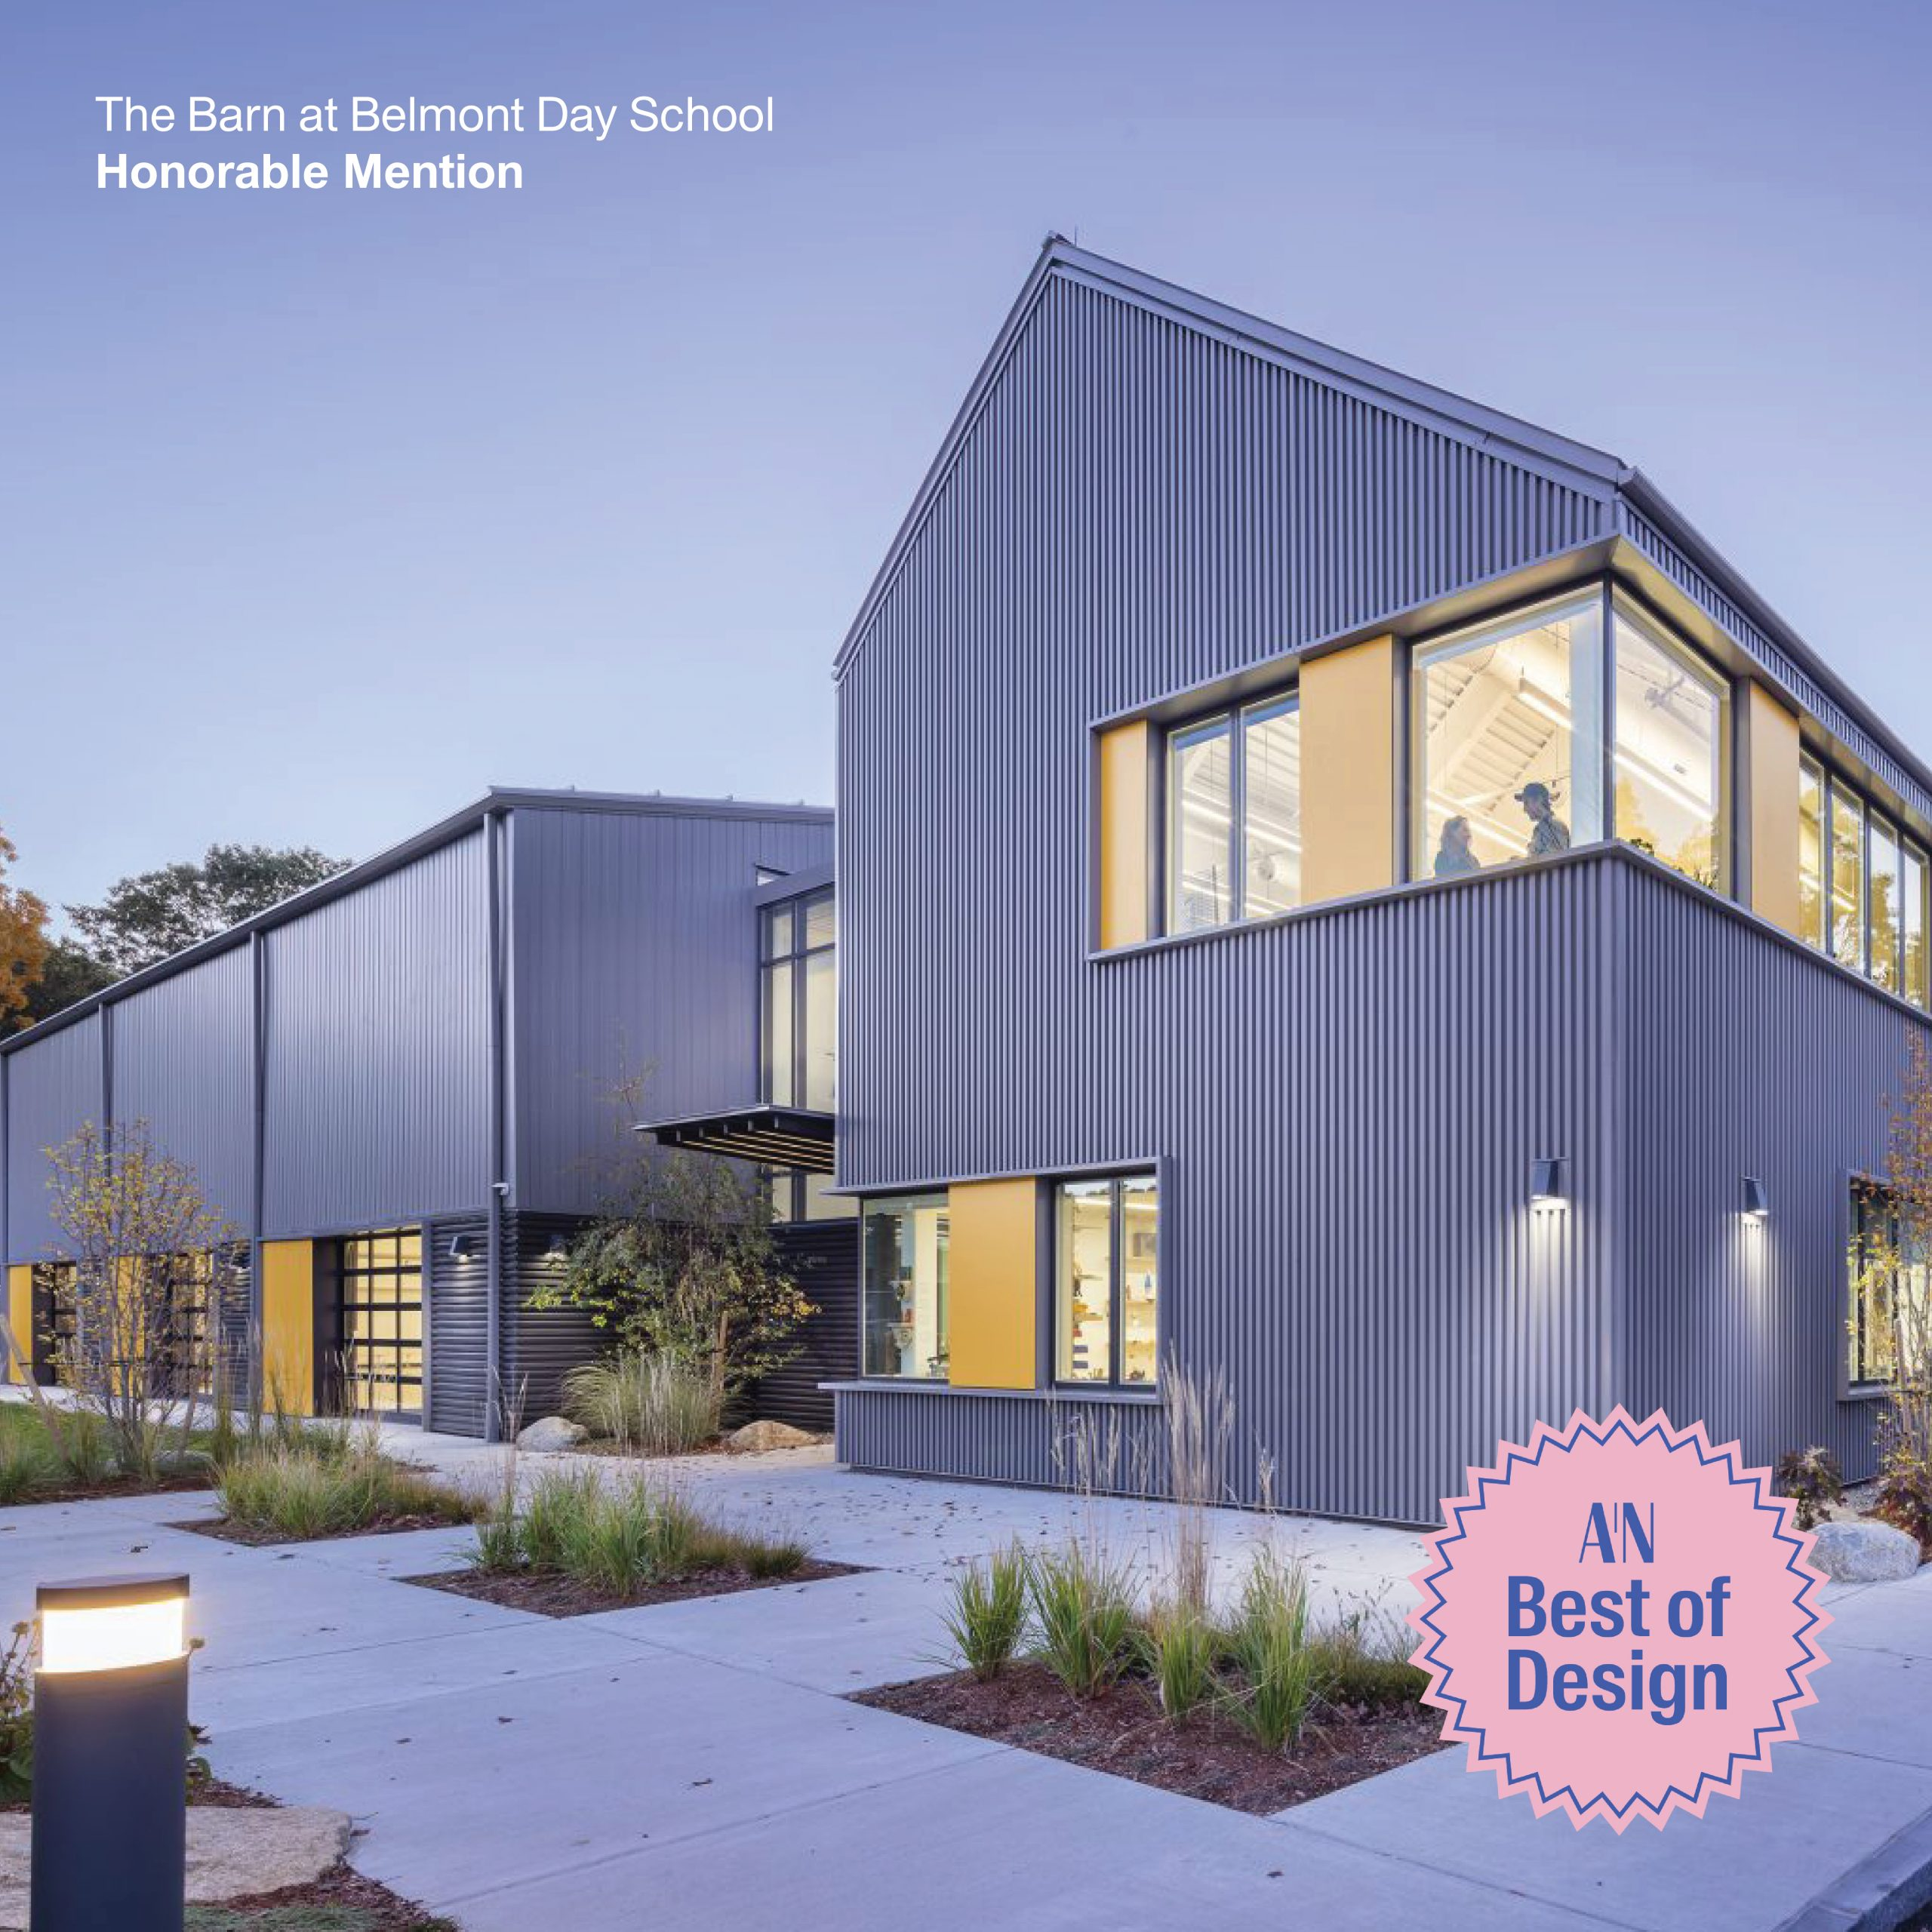 Three Utile projects receive recognition from The Architect's Newspaper Best of Design Awards